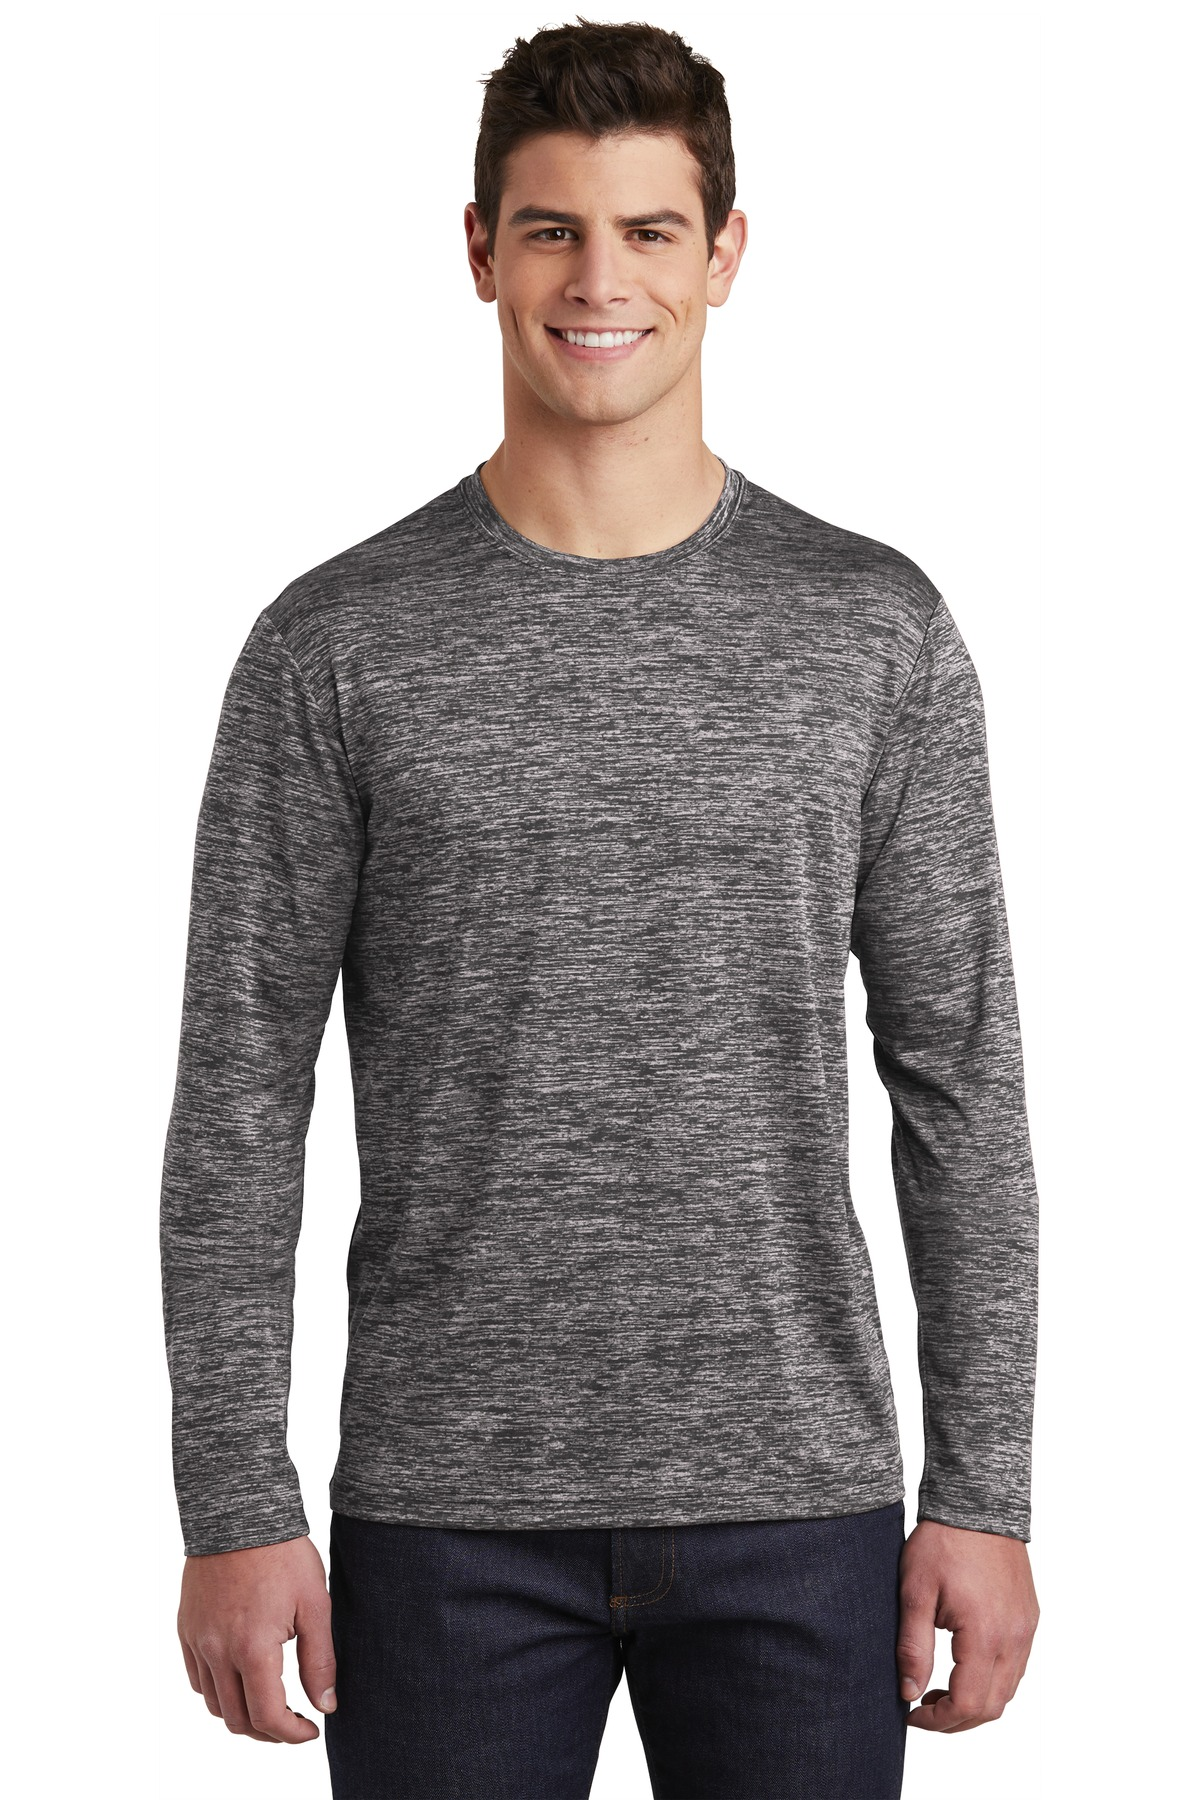 Sport-Tek  ®  PosiCharge  ®  Long Sleeve Electric Heather Tee. ST390LS - Black Electric